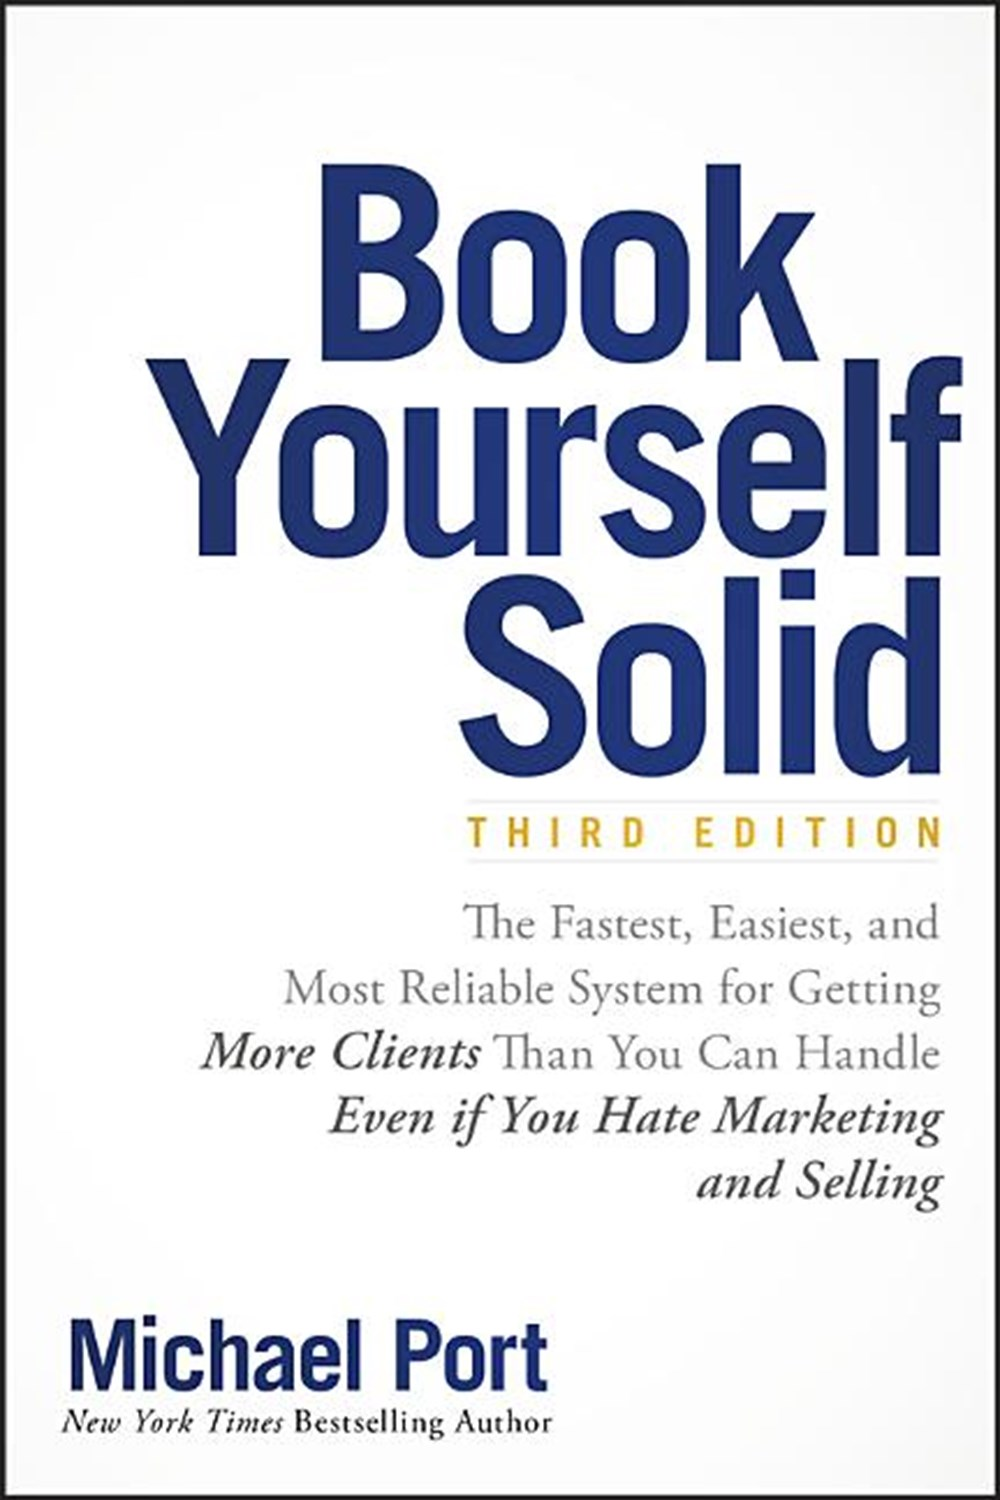 Book Yourself Solid: The Fastest, Easiest, and Most Reliable System for Getting More Clients Than Yo